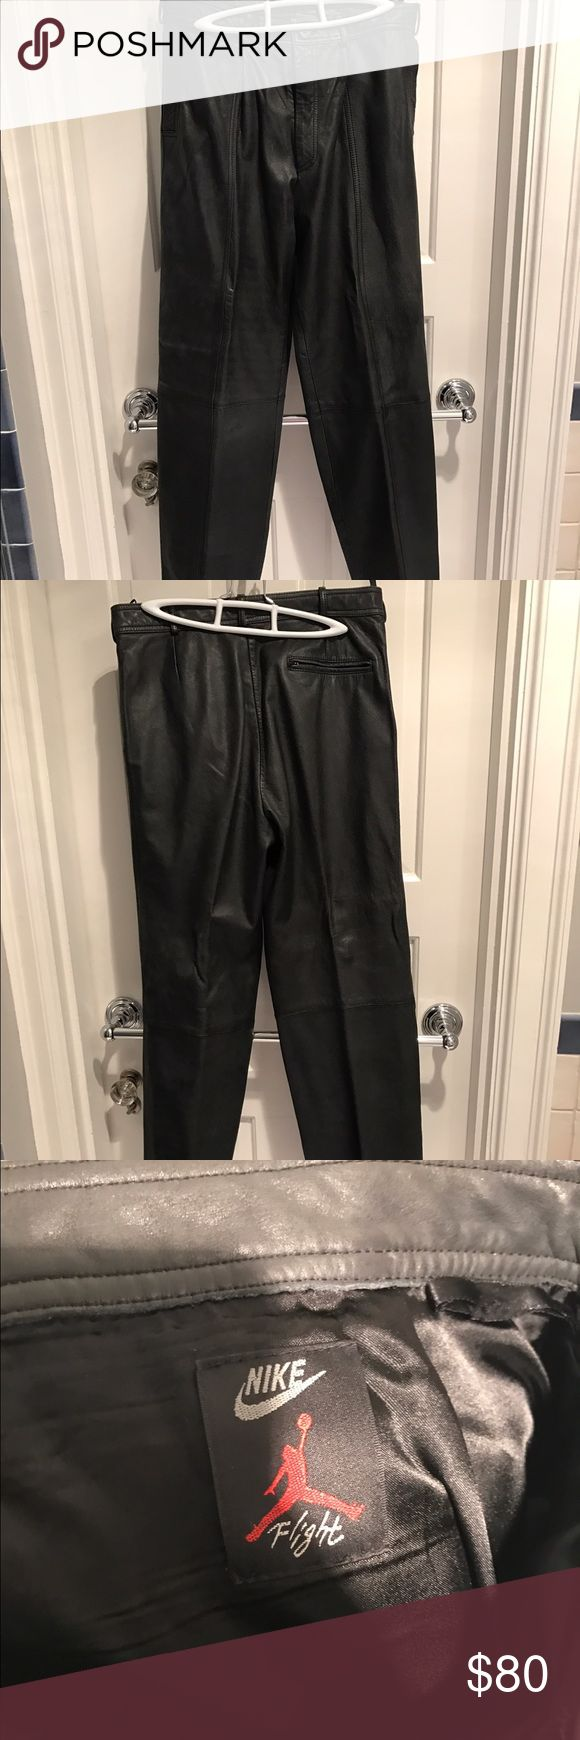 Men's Leather Air Nike Leather Pants Regular wear and tear! Bundle with jacket to save! Nike Pants